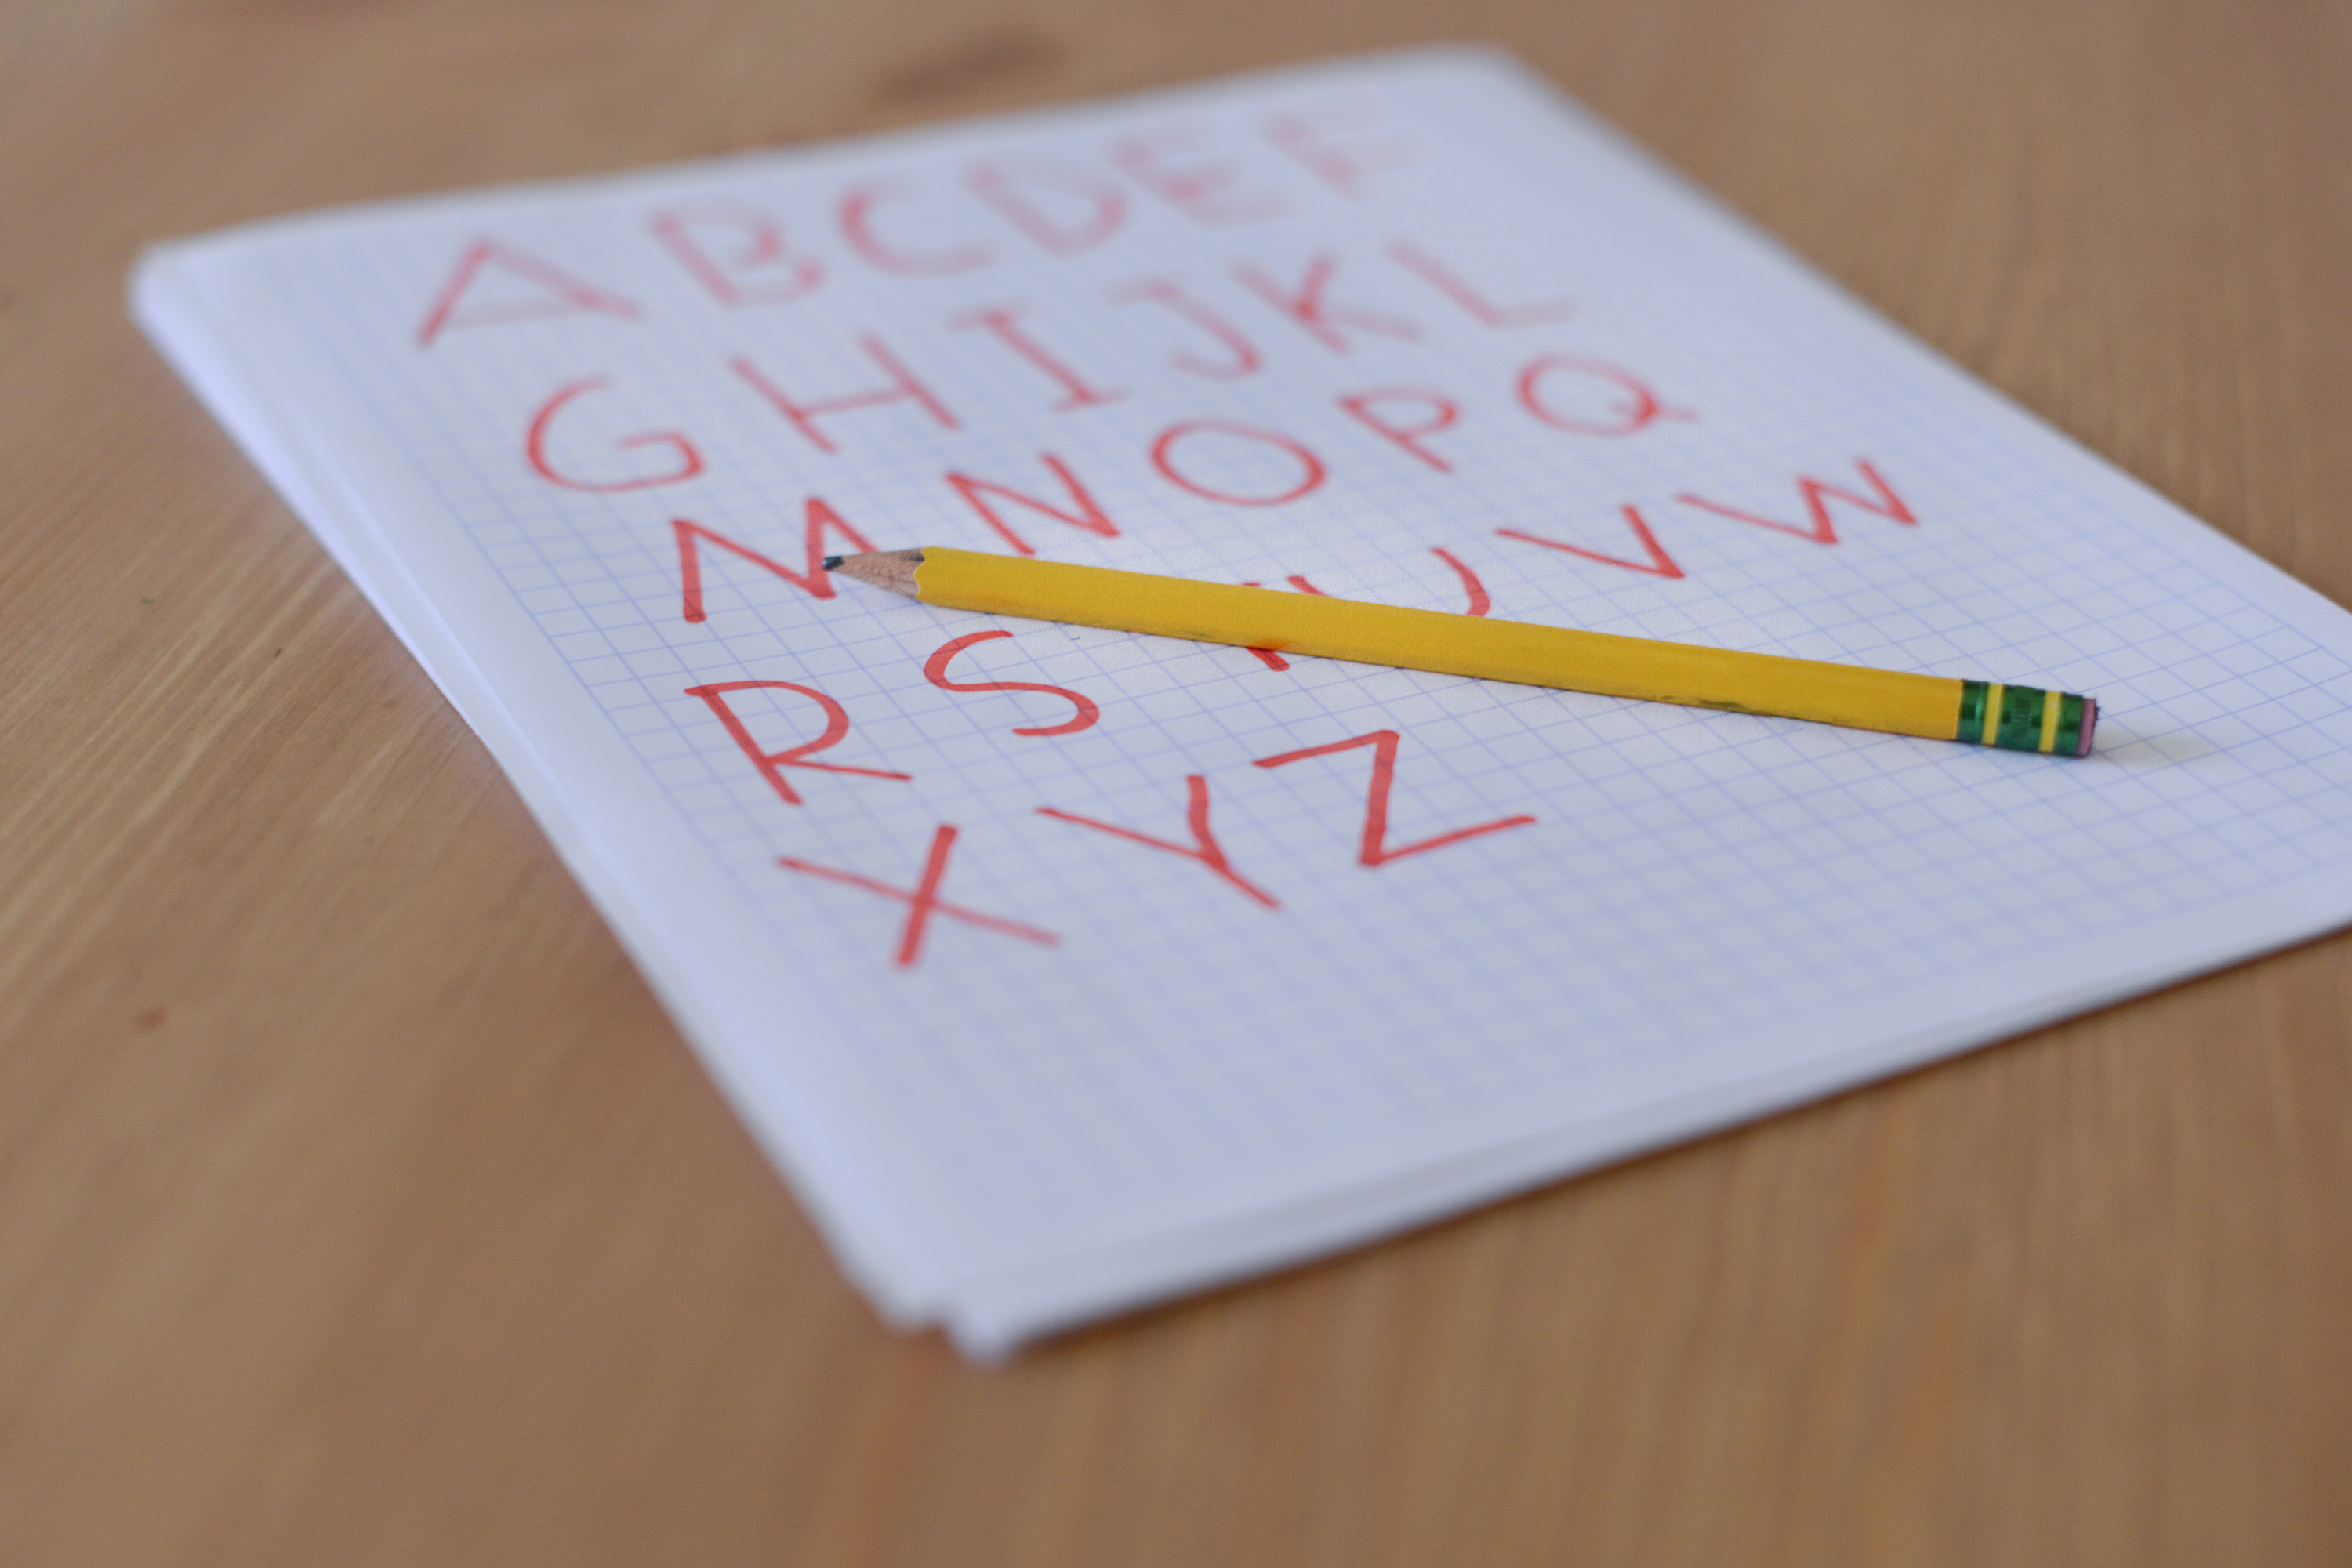 How to make alphabets in graph paper